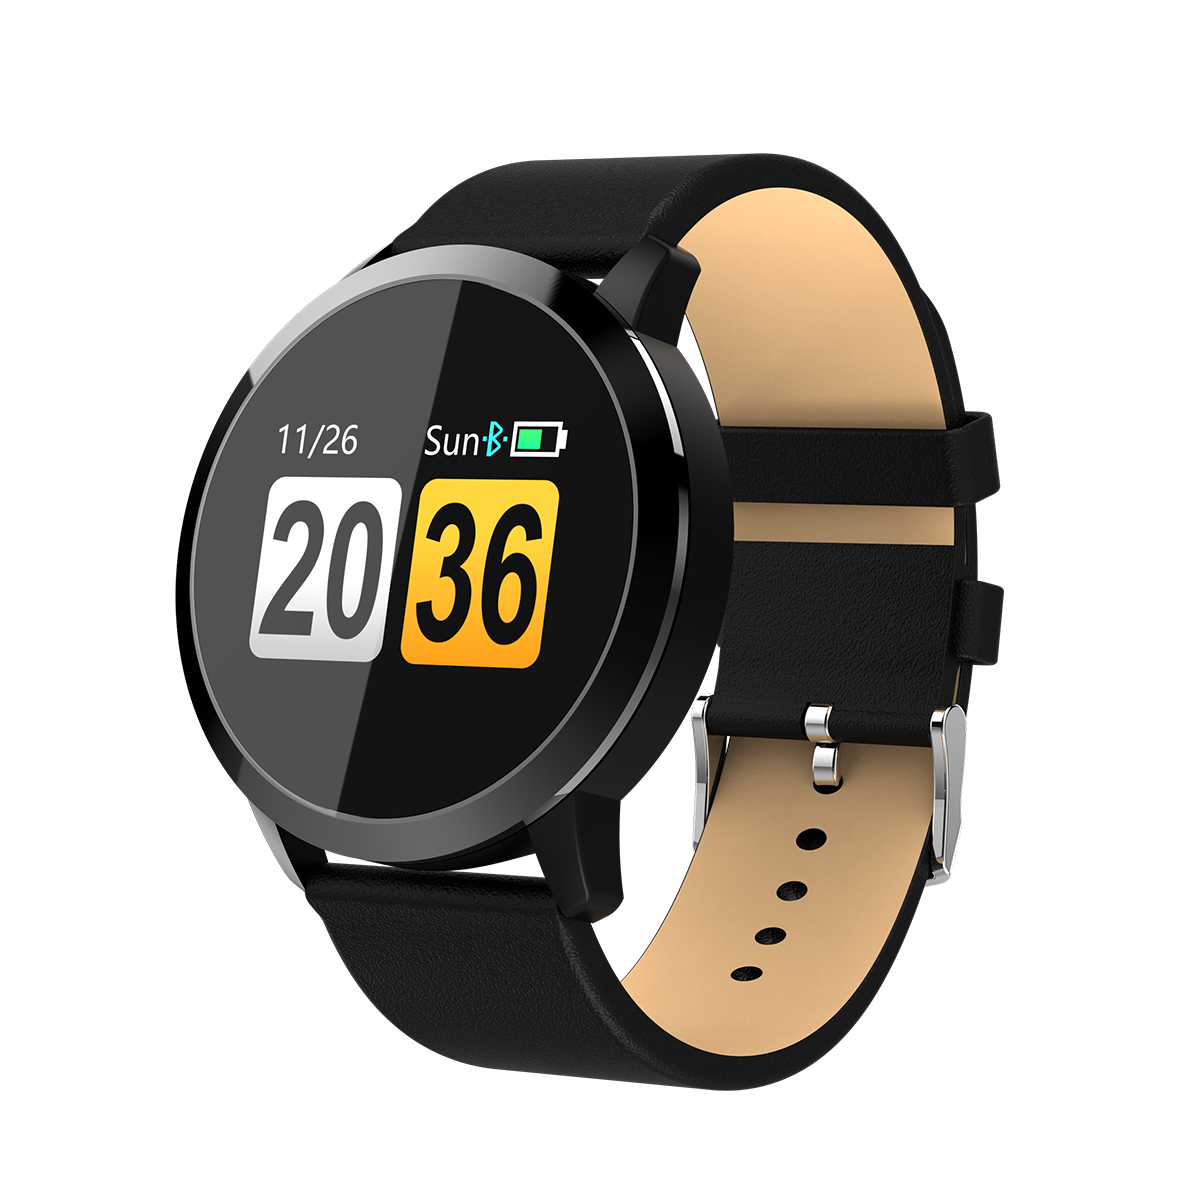 FIZILI Q8 Color pantalla táctil Smartwatch Smart 1080 p reloj hombres y mujeres IP67 impermeable deportes Fitness Wearable electrónico Produ